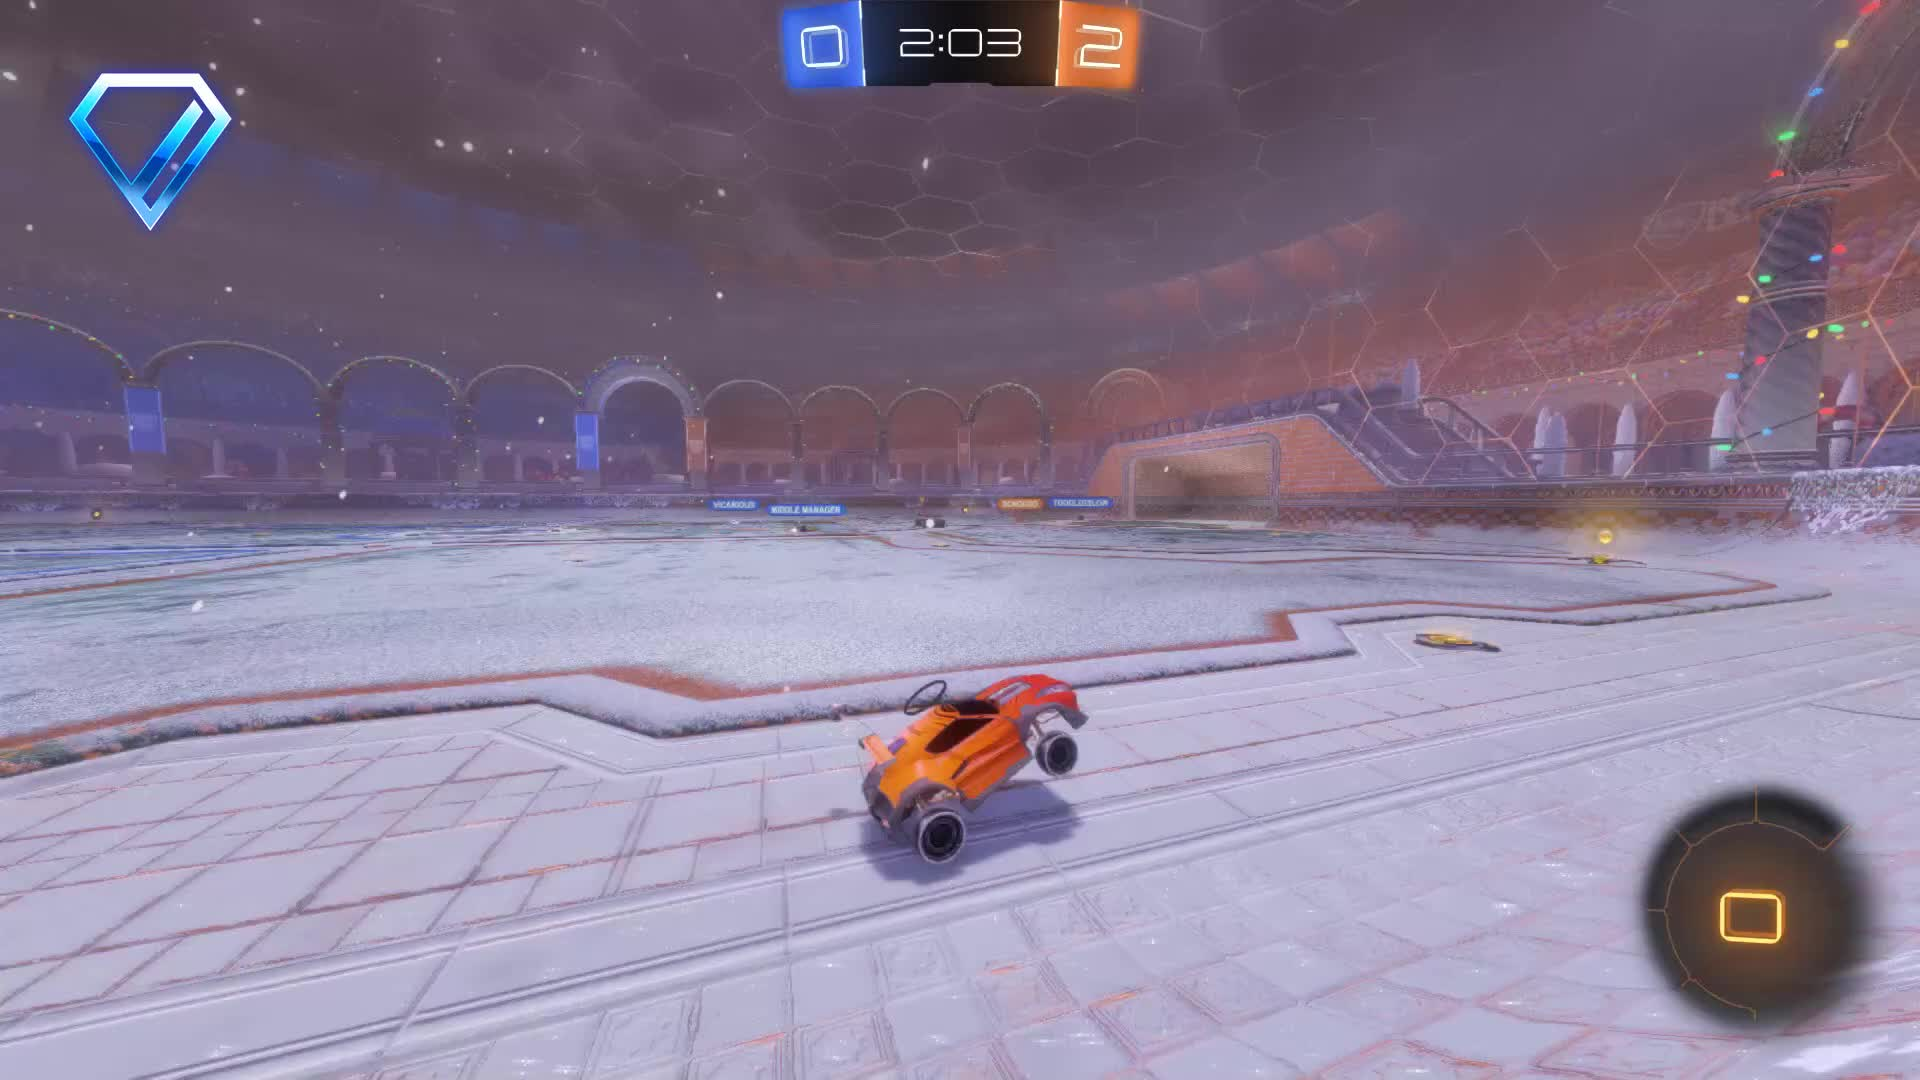 Gif Your Game, GifYourGame, Goal, R | O | O | S | T | E | R, Rocket League, RocketLeague, Goal 3: R | O | O | S | T | E | R GIFs